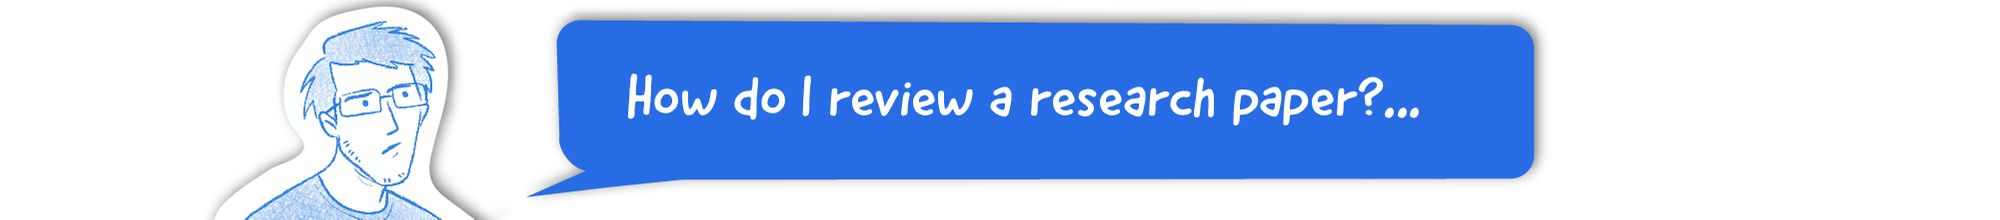 How do I review a research paper?